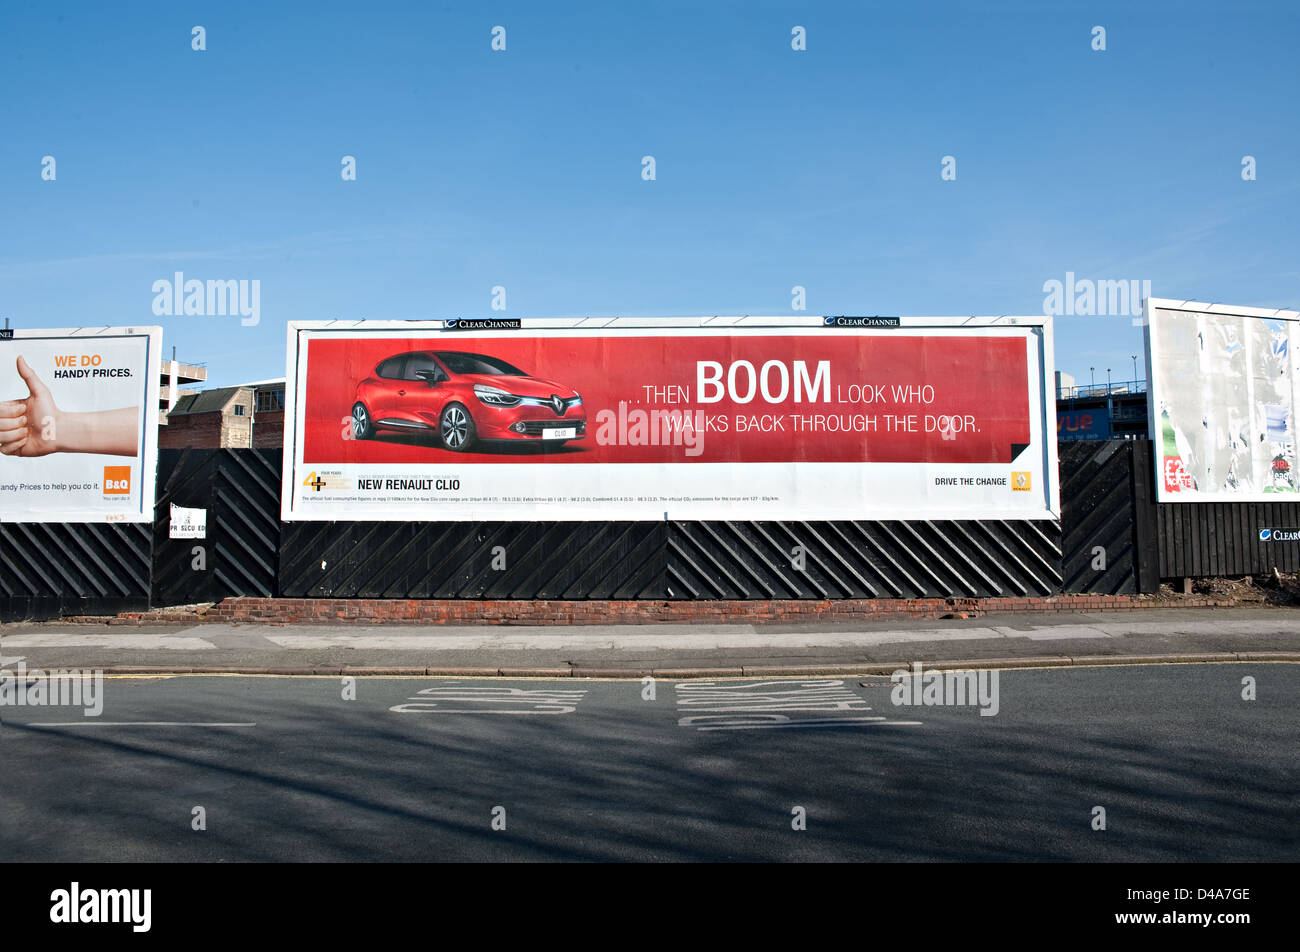 Several large advertising billboards, UK. - Stock Image